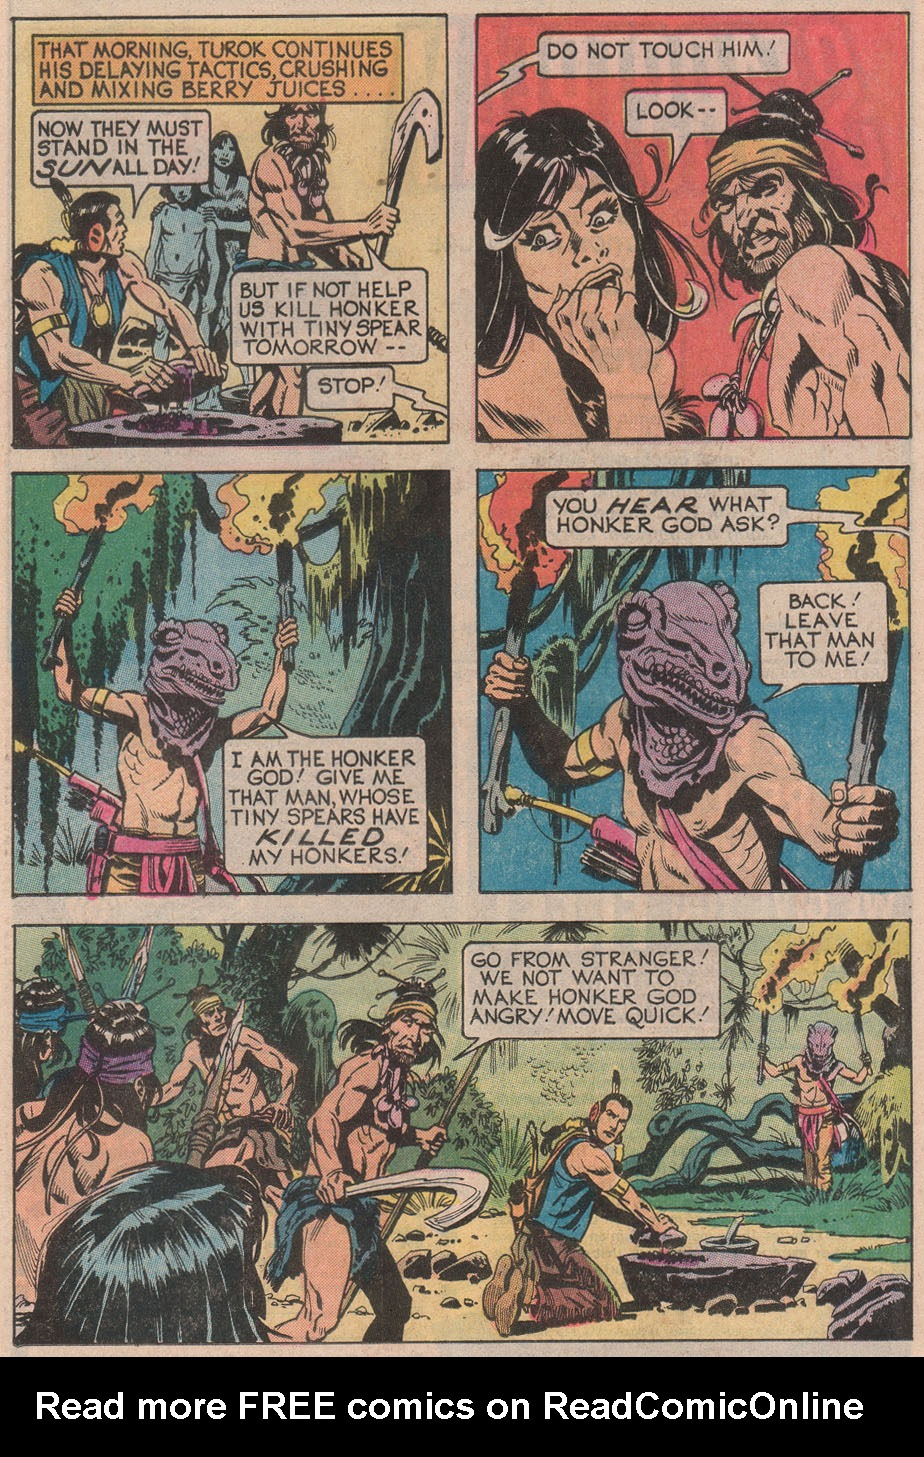 Read online Turok, Son of Stone comic -  Issue #113 - 13